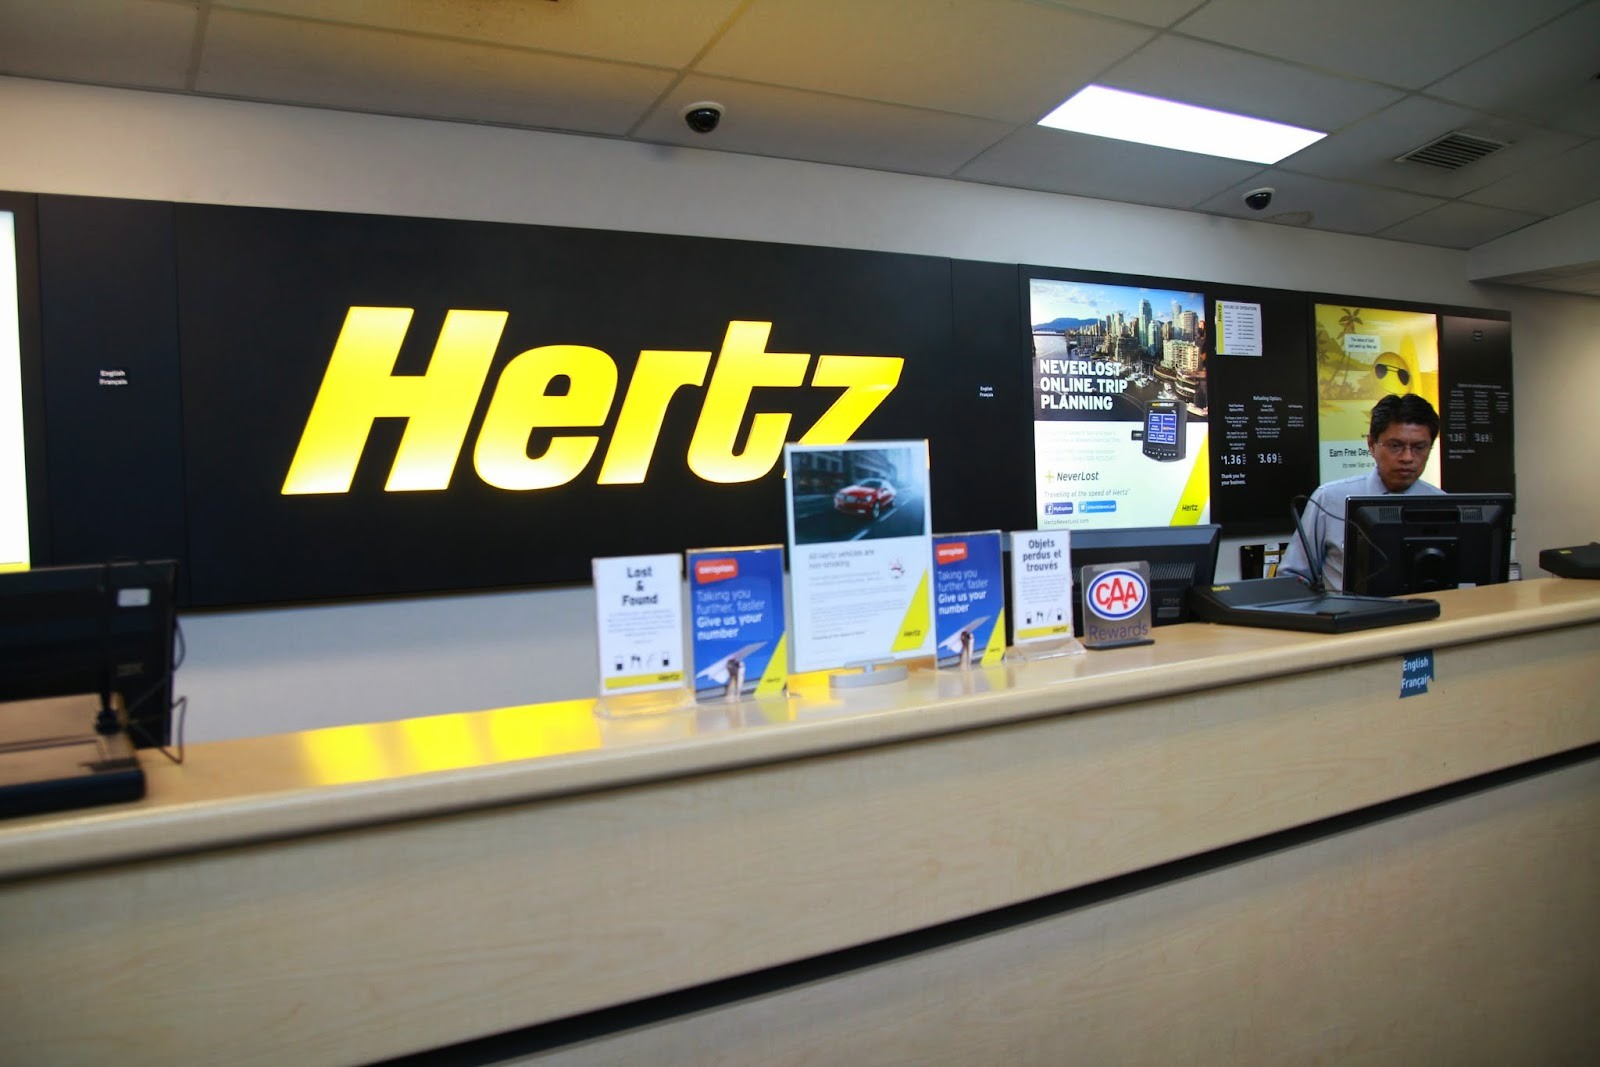 Feb 25, · The Hertz Corporation was founded in by Walter L. Jacobs. He started the business in Chicago, IL with 12 Ford Model T cars. Within 5 years, Jacobs company, simply called Rent A Car, had a fleet of